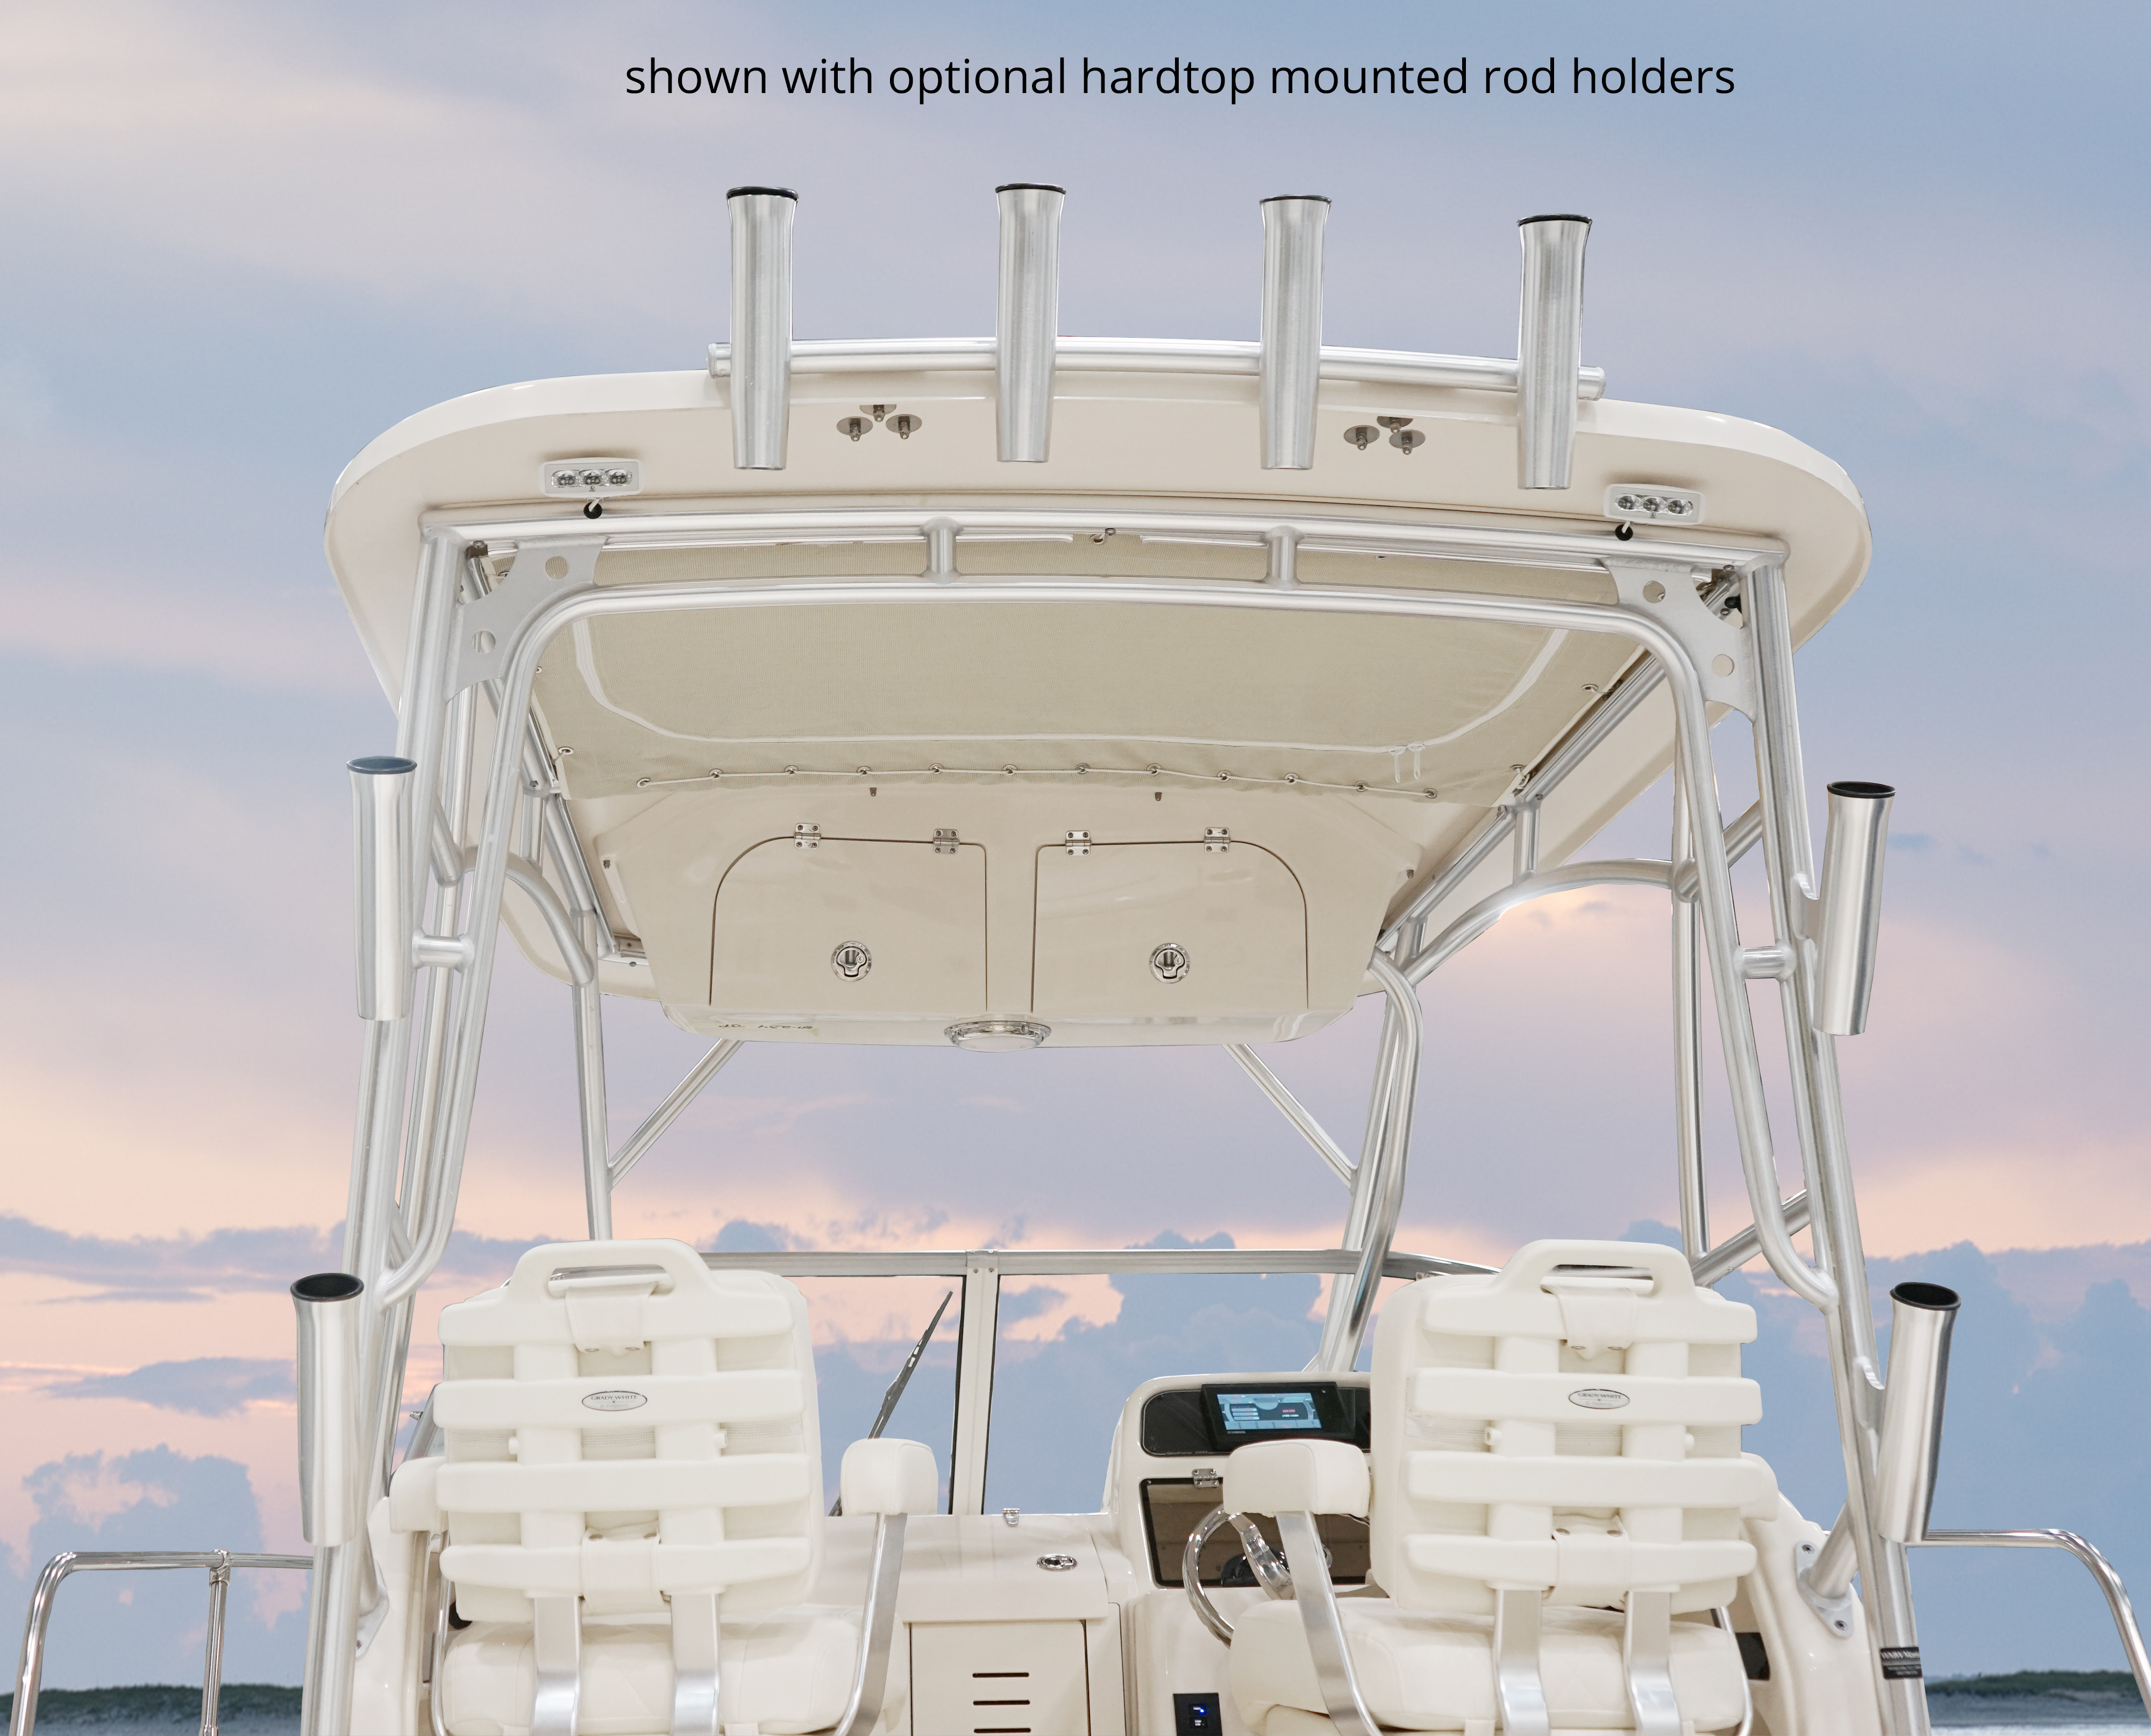 Grady-White Seafarer 228, 22-foot walk around cabin hardtop with storage, rod holders, and lights